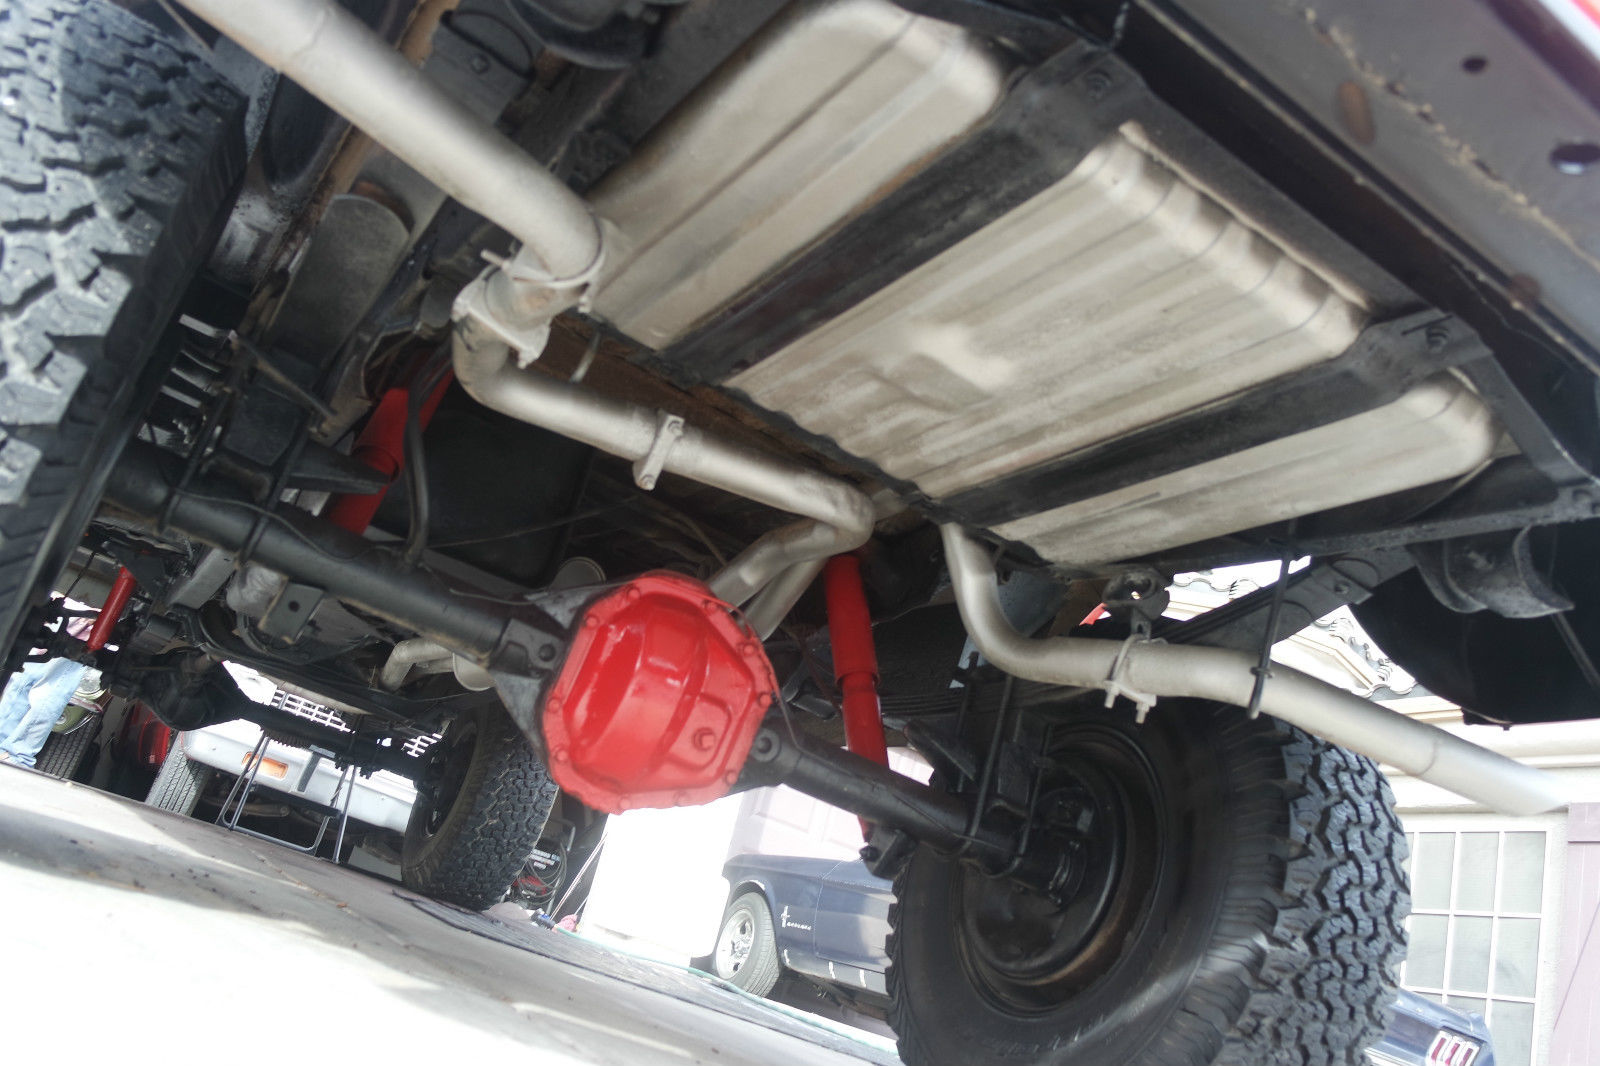 Spray In Bedliner Cost F150 >> FORD F250 4X4 Pick Up Truck, TAGS > high Boy, f150, f350,4 WHEEL DRIVE, Lifted